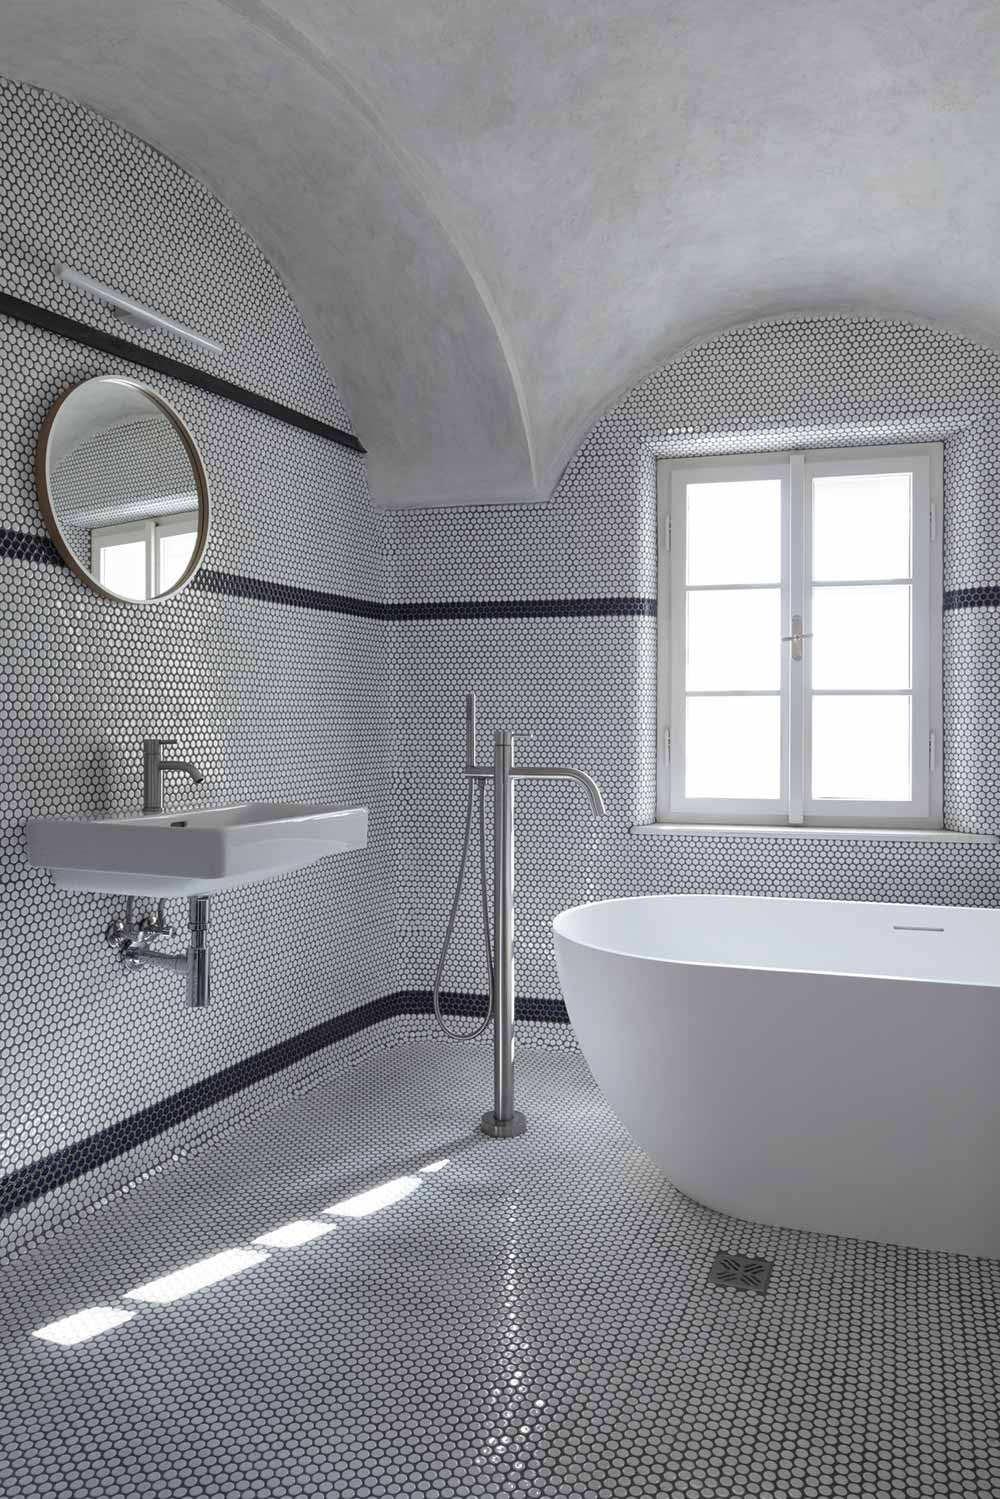 guesthouse renovation bathroom design - Stajnhaus